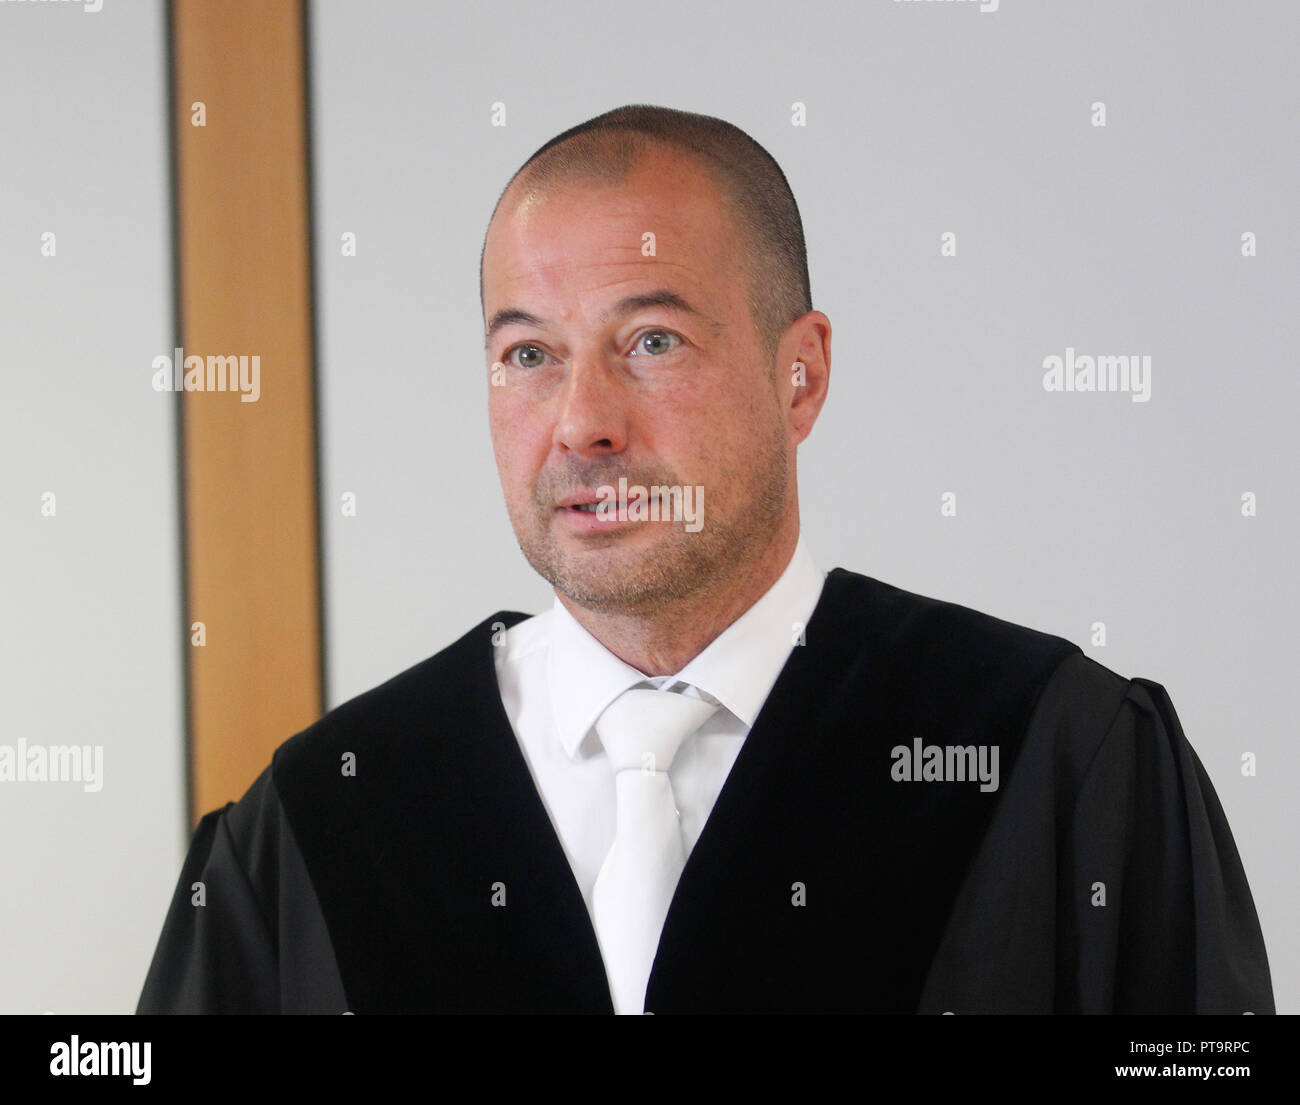 08 October 2018, North Rhine-Westphalia, Essen: Judge Markus Dörlemann opens the trial in the Essen Regional Court for alleged extortion against a defendant. The defendant is said to have threatened to poison food in a discount store between March and April 2018. He had been captured at the handover of 100,000 euros in cash. Photo: Roland Weihrauch/dpa - ACHTUNG: Person wurde aus rechtlichen Gründen gepixelt - Stock Image